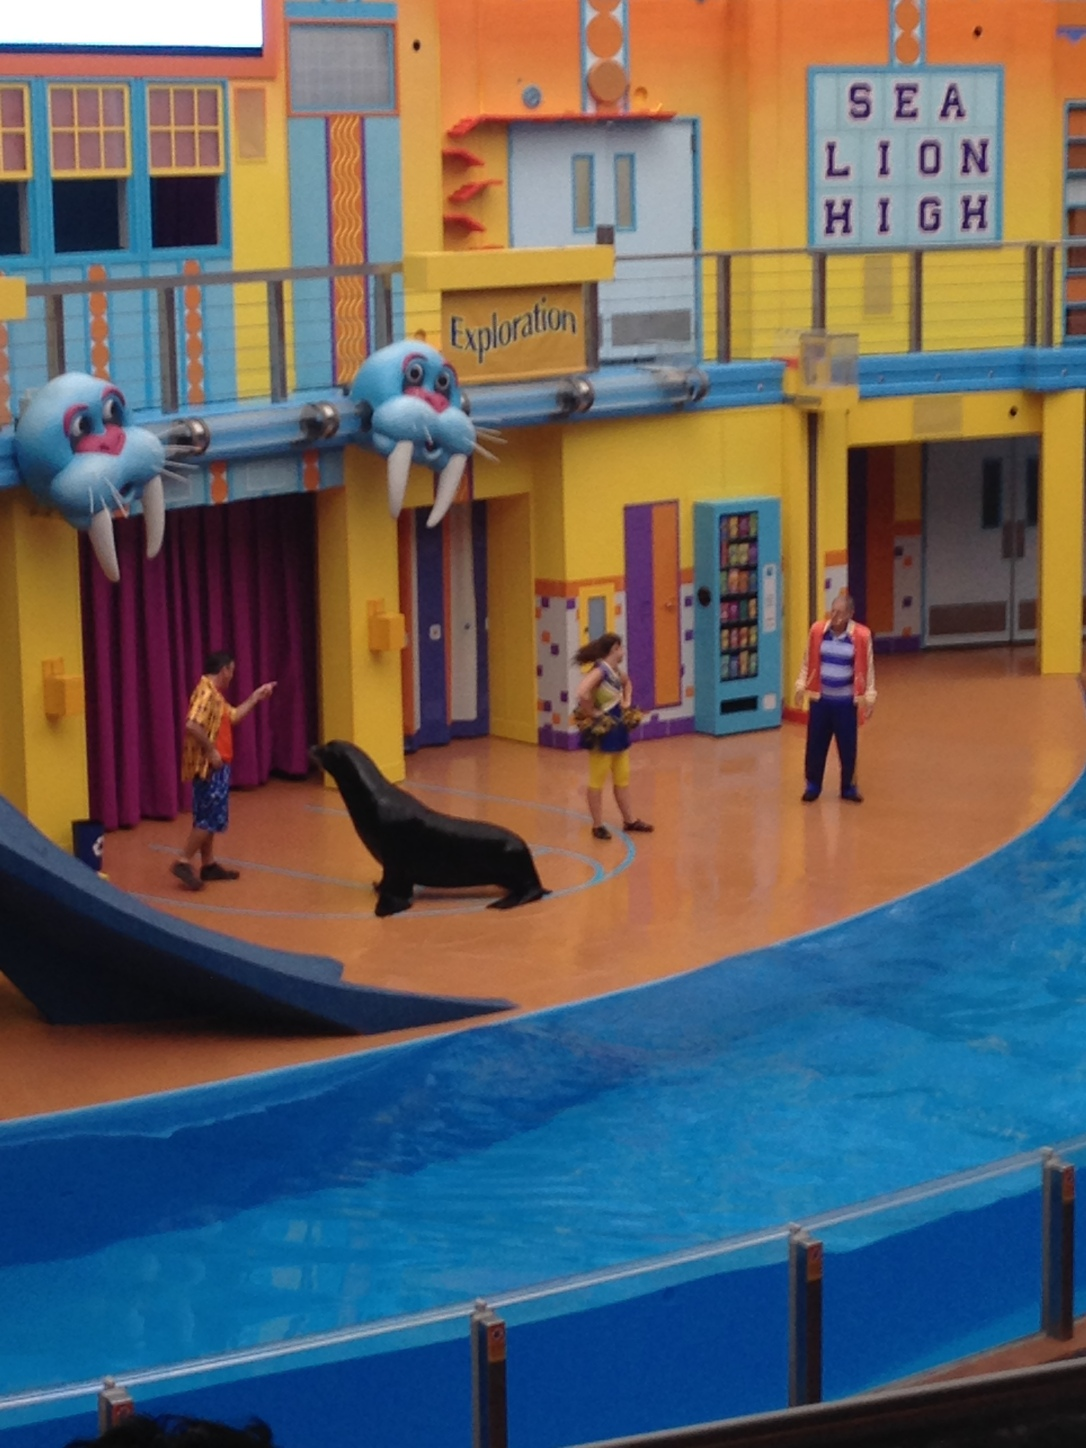 2015-06-20_SeaWorld SeaLion Show